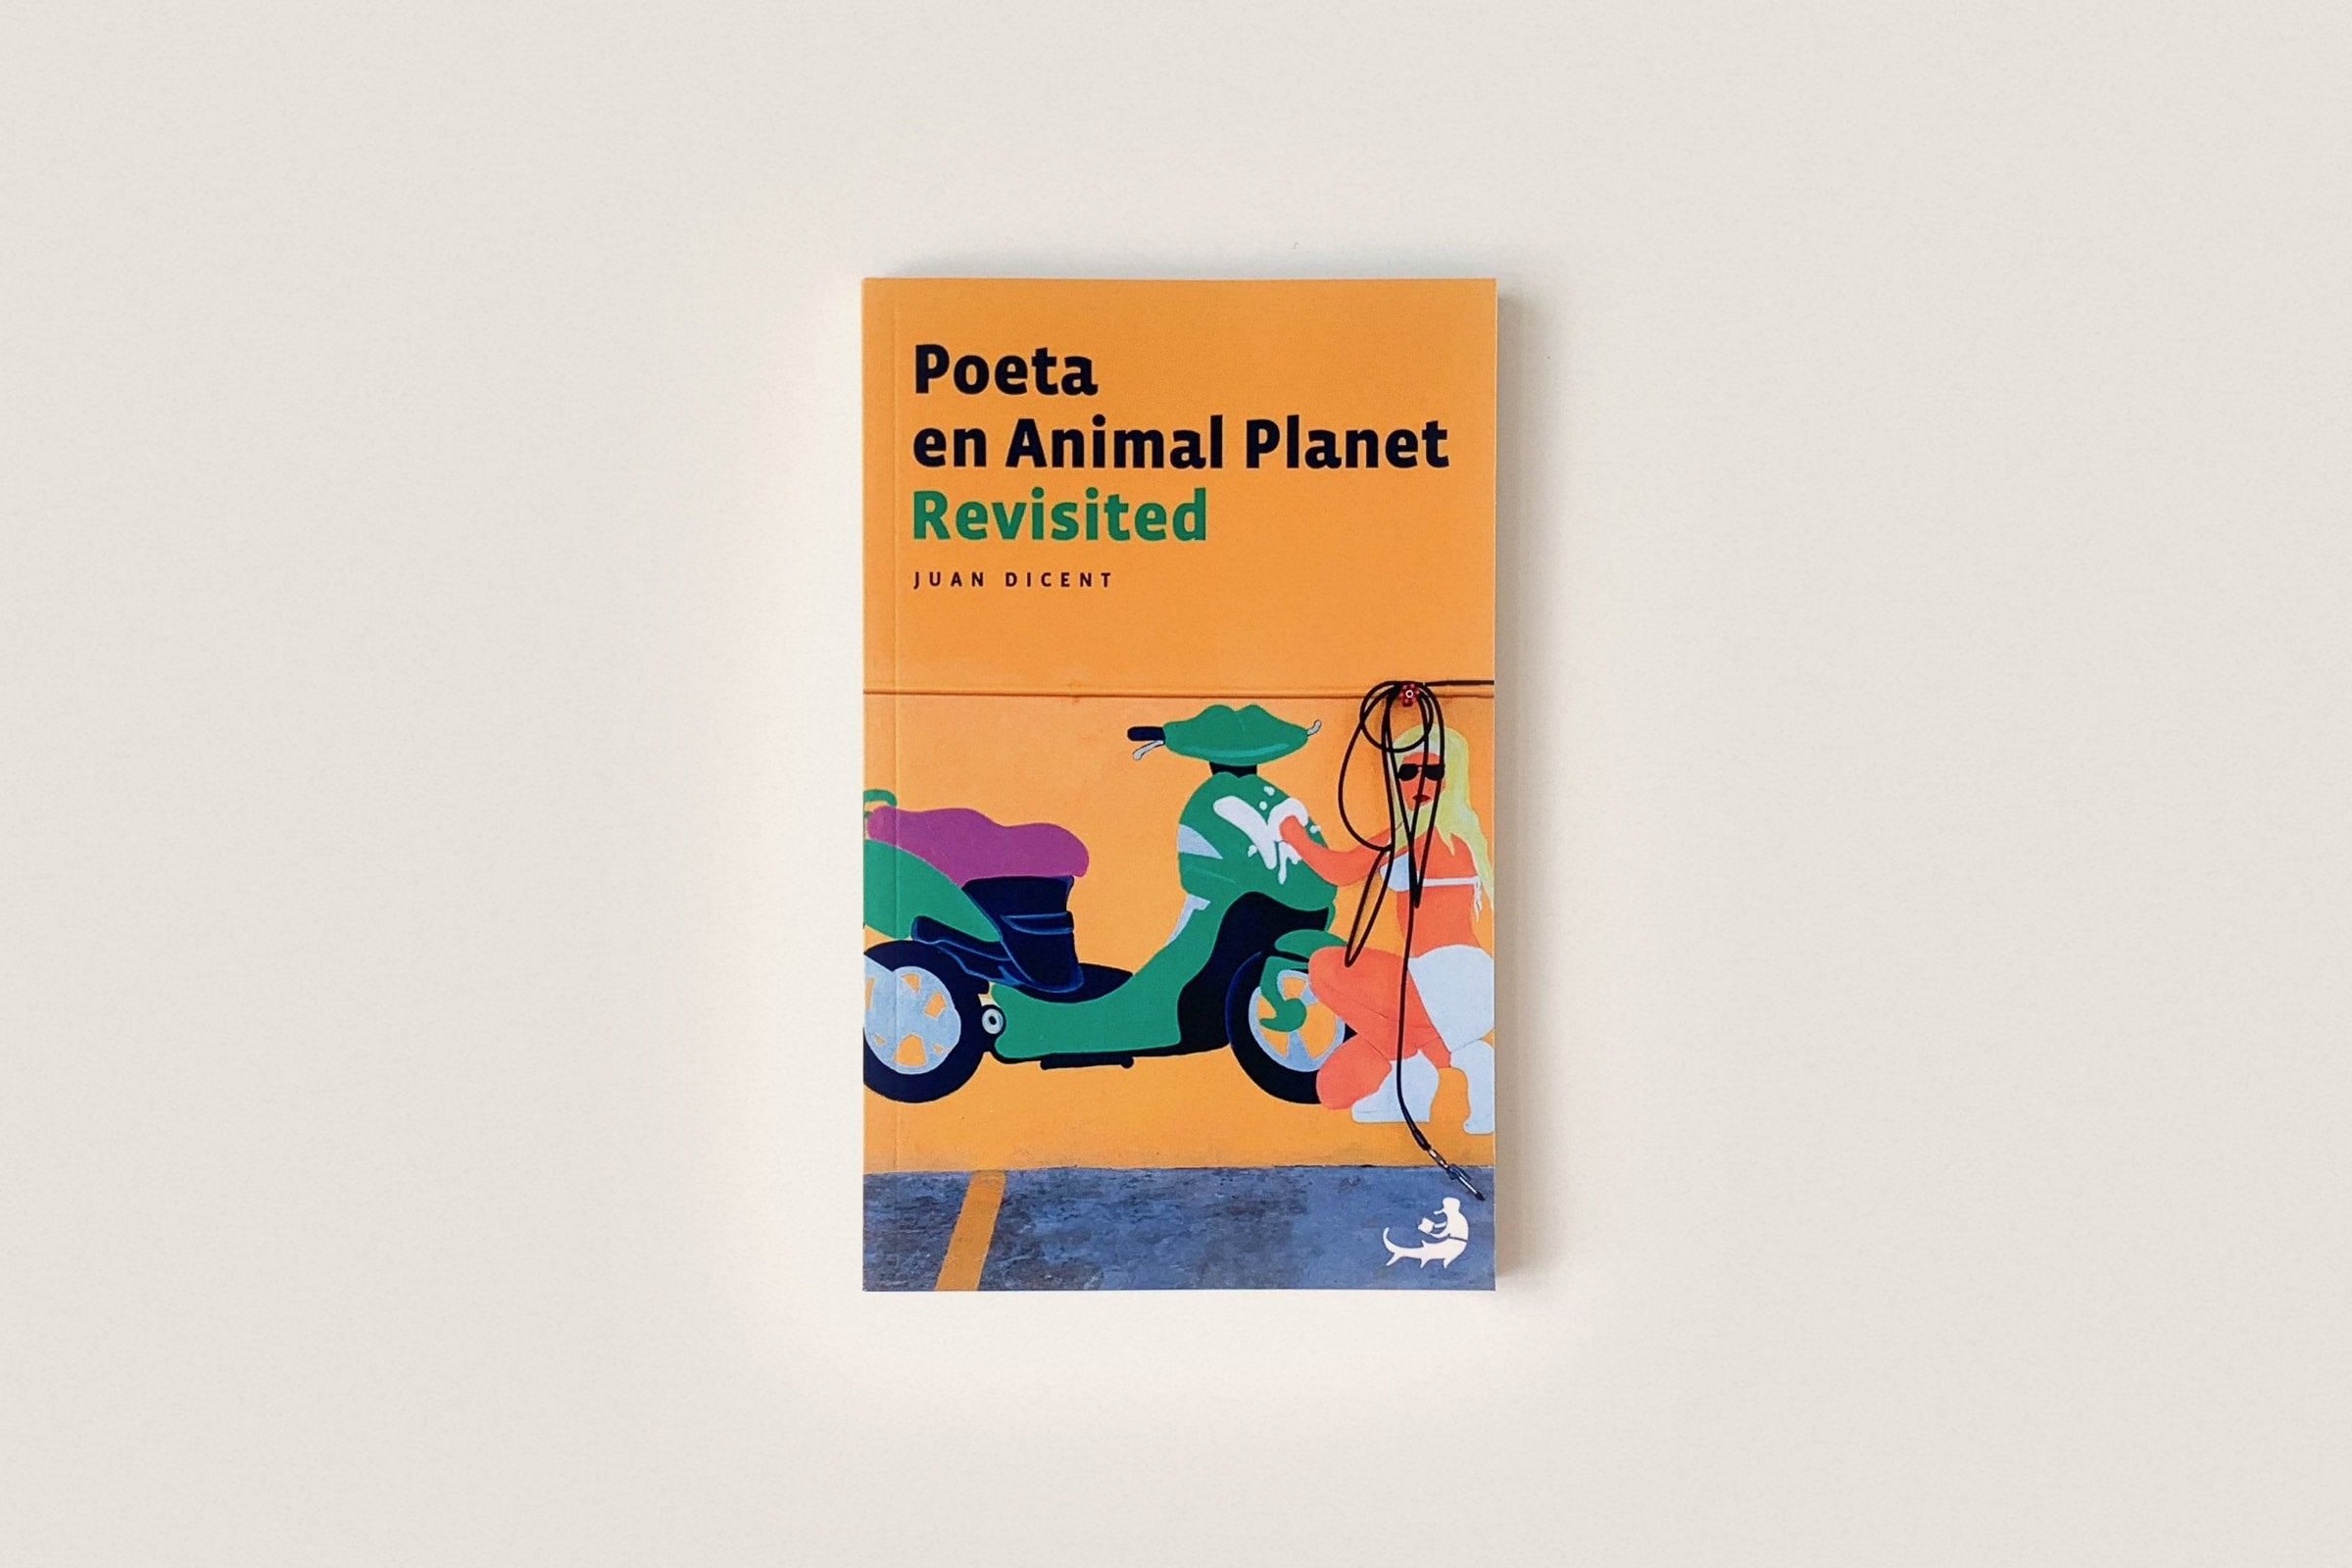 Libro: Poeta en Animal Planet Revisited — Juan Dicent